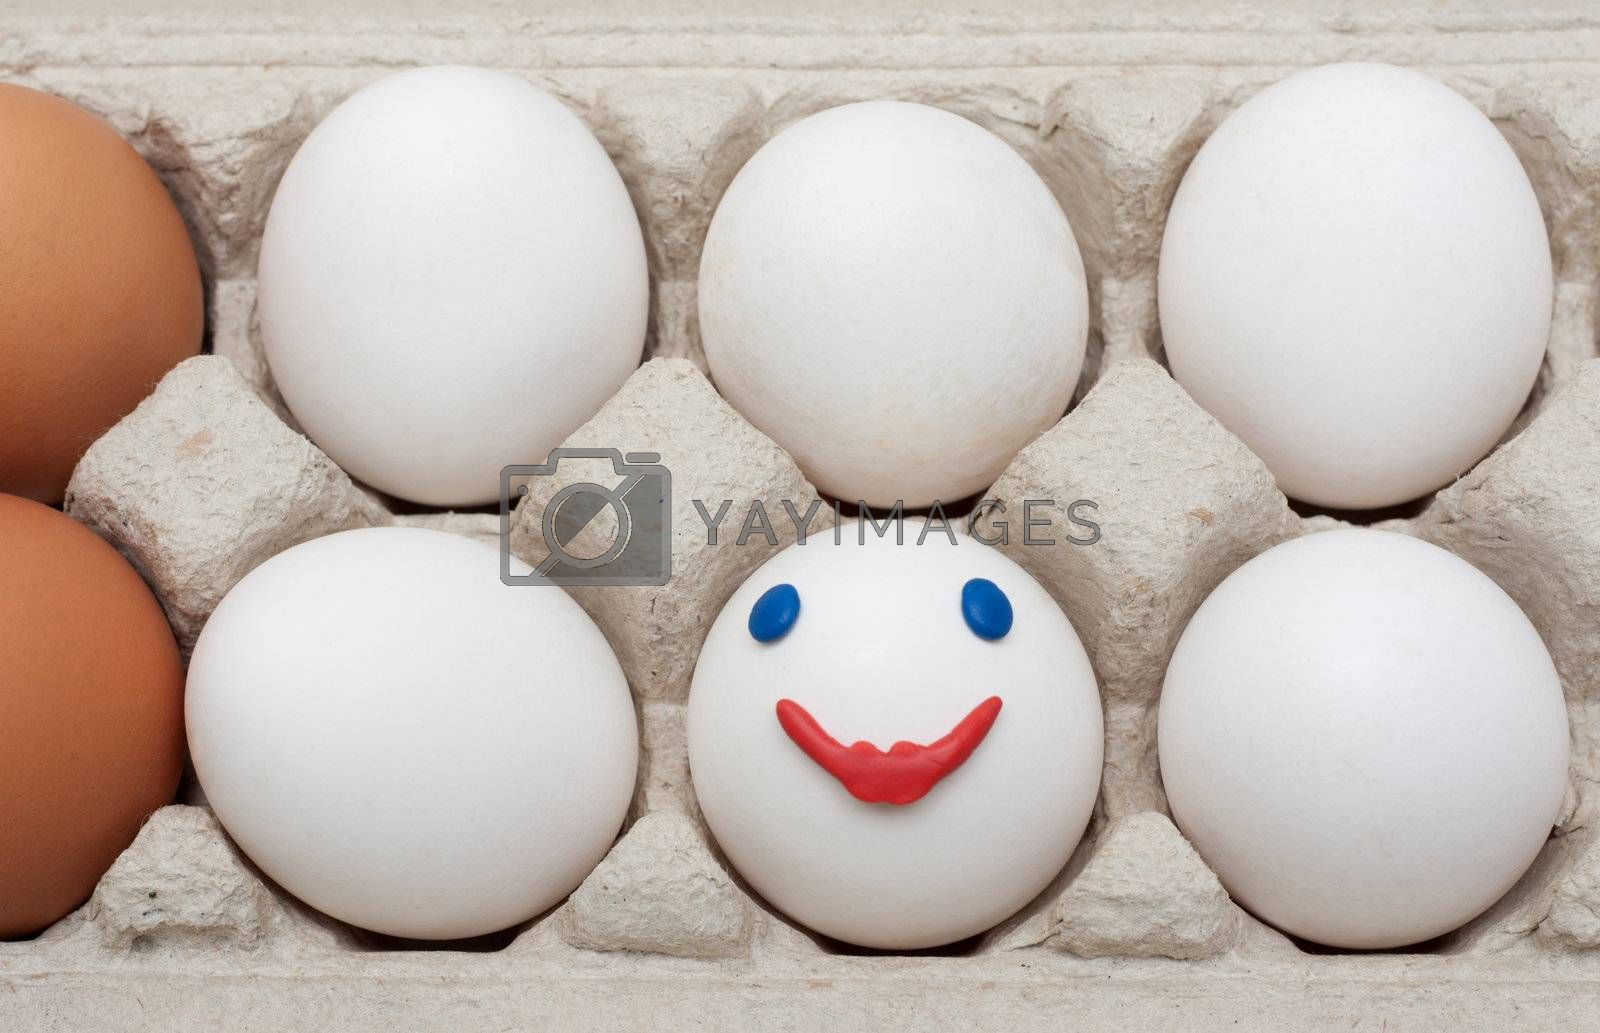 Egg in packing with funny person, smile